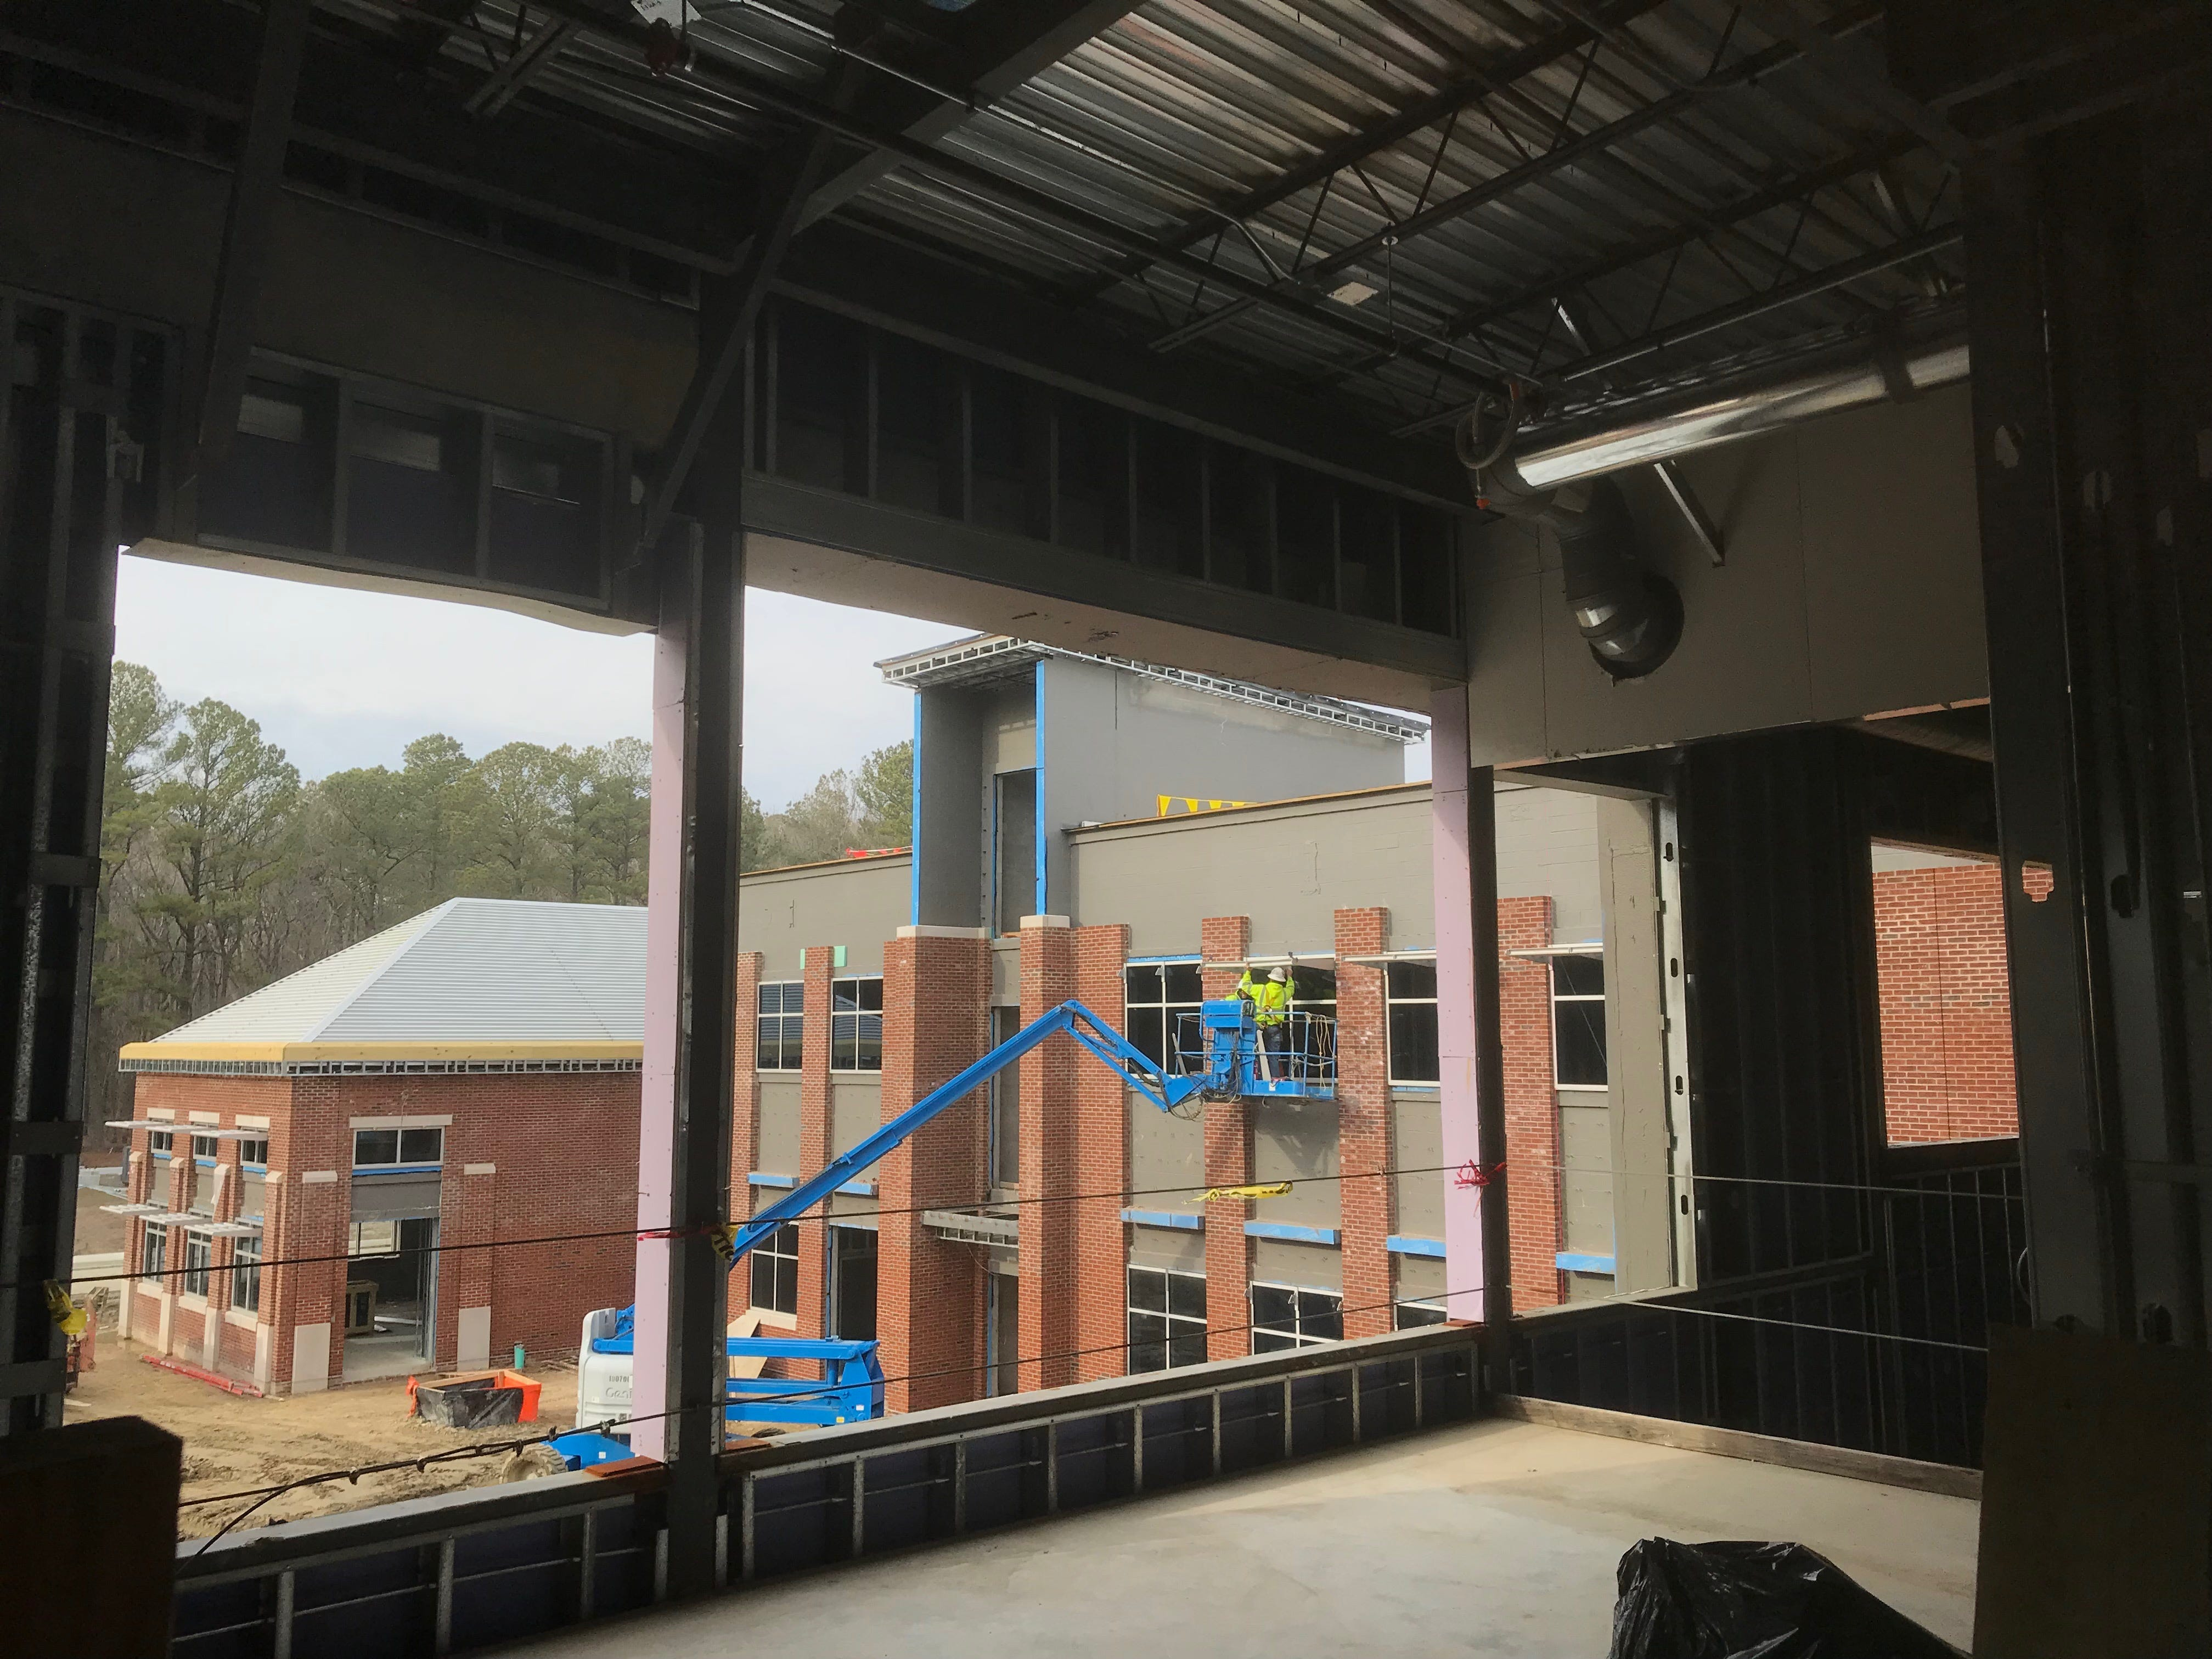 Construction of the new administrative and academic building at Eastern Shore Community in Melfa, Virginia is making good progress. A tour on Wednesday, Feb. 6, 2019 showed off some of the building's features.